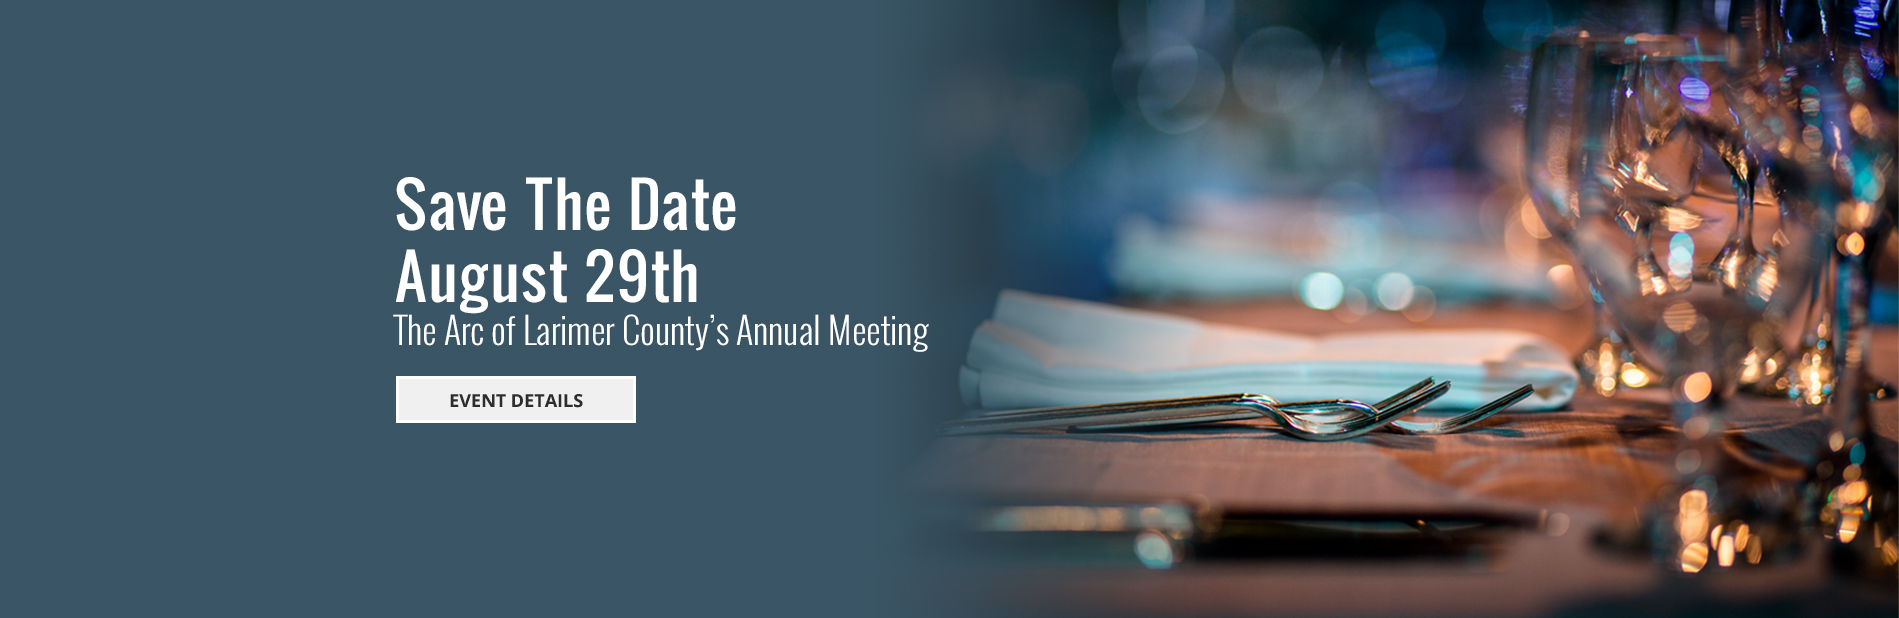 Save the Date - August 29th - The Arc of Larimer County's Annual Meeting - Click for Event Details